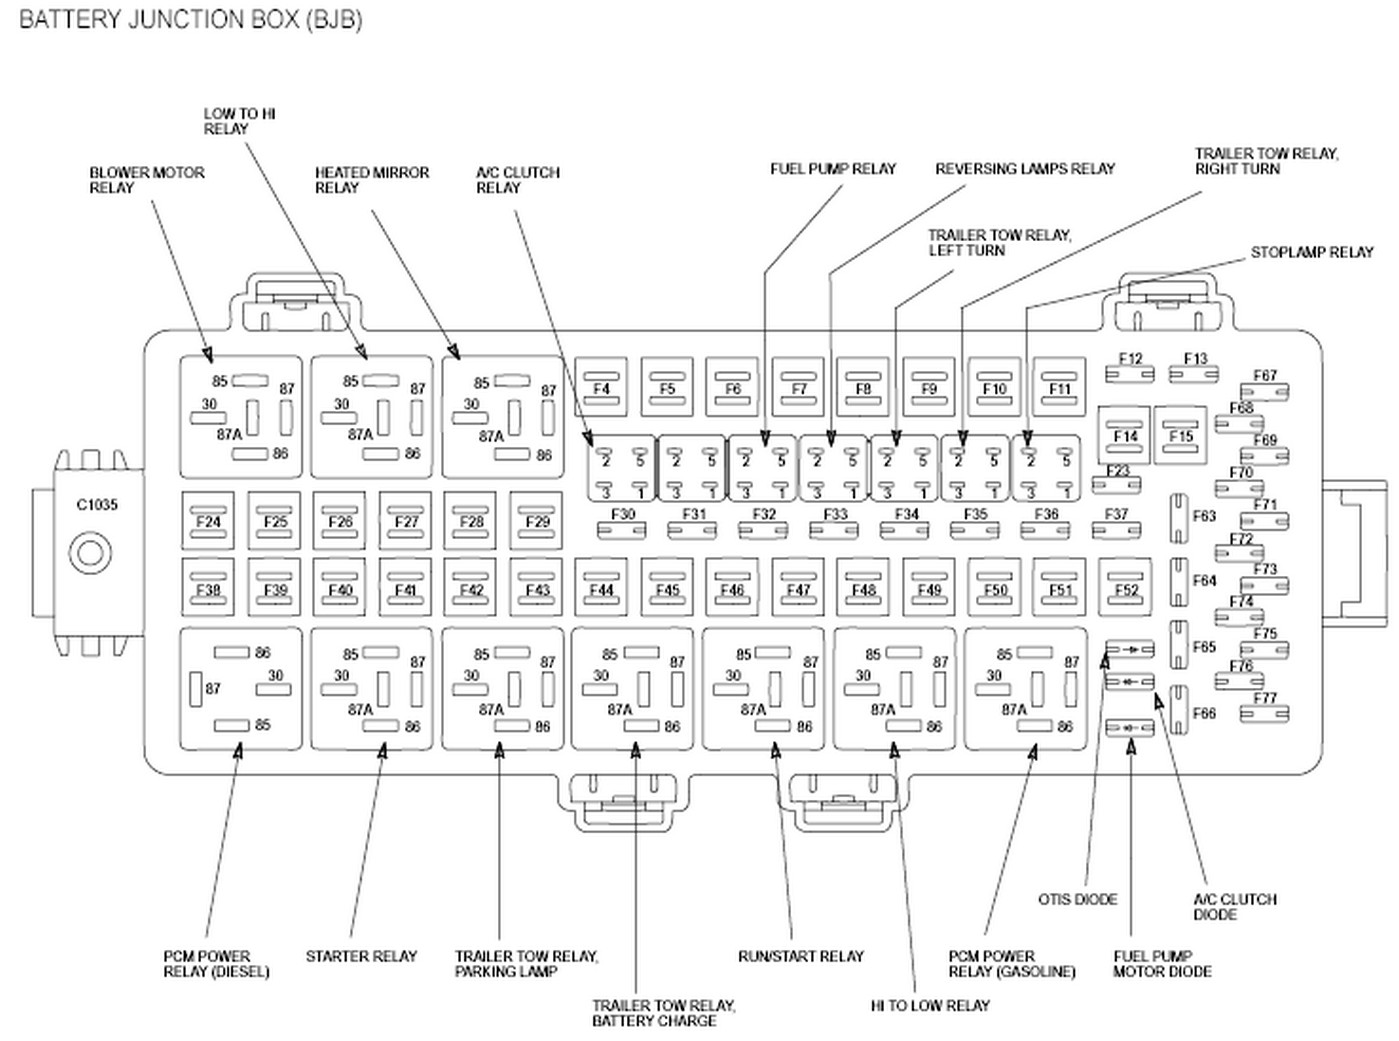 2011 ford f250 fuse box diagram Zoinyhu 2012 f250 fuse box location 2009 ford fusion fuse box diagram  at soozxer.org